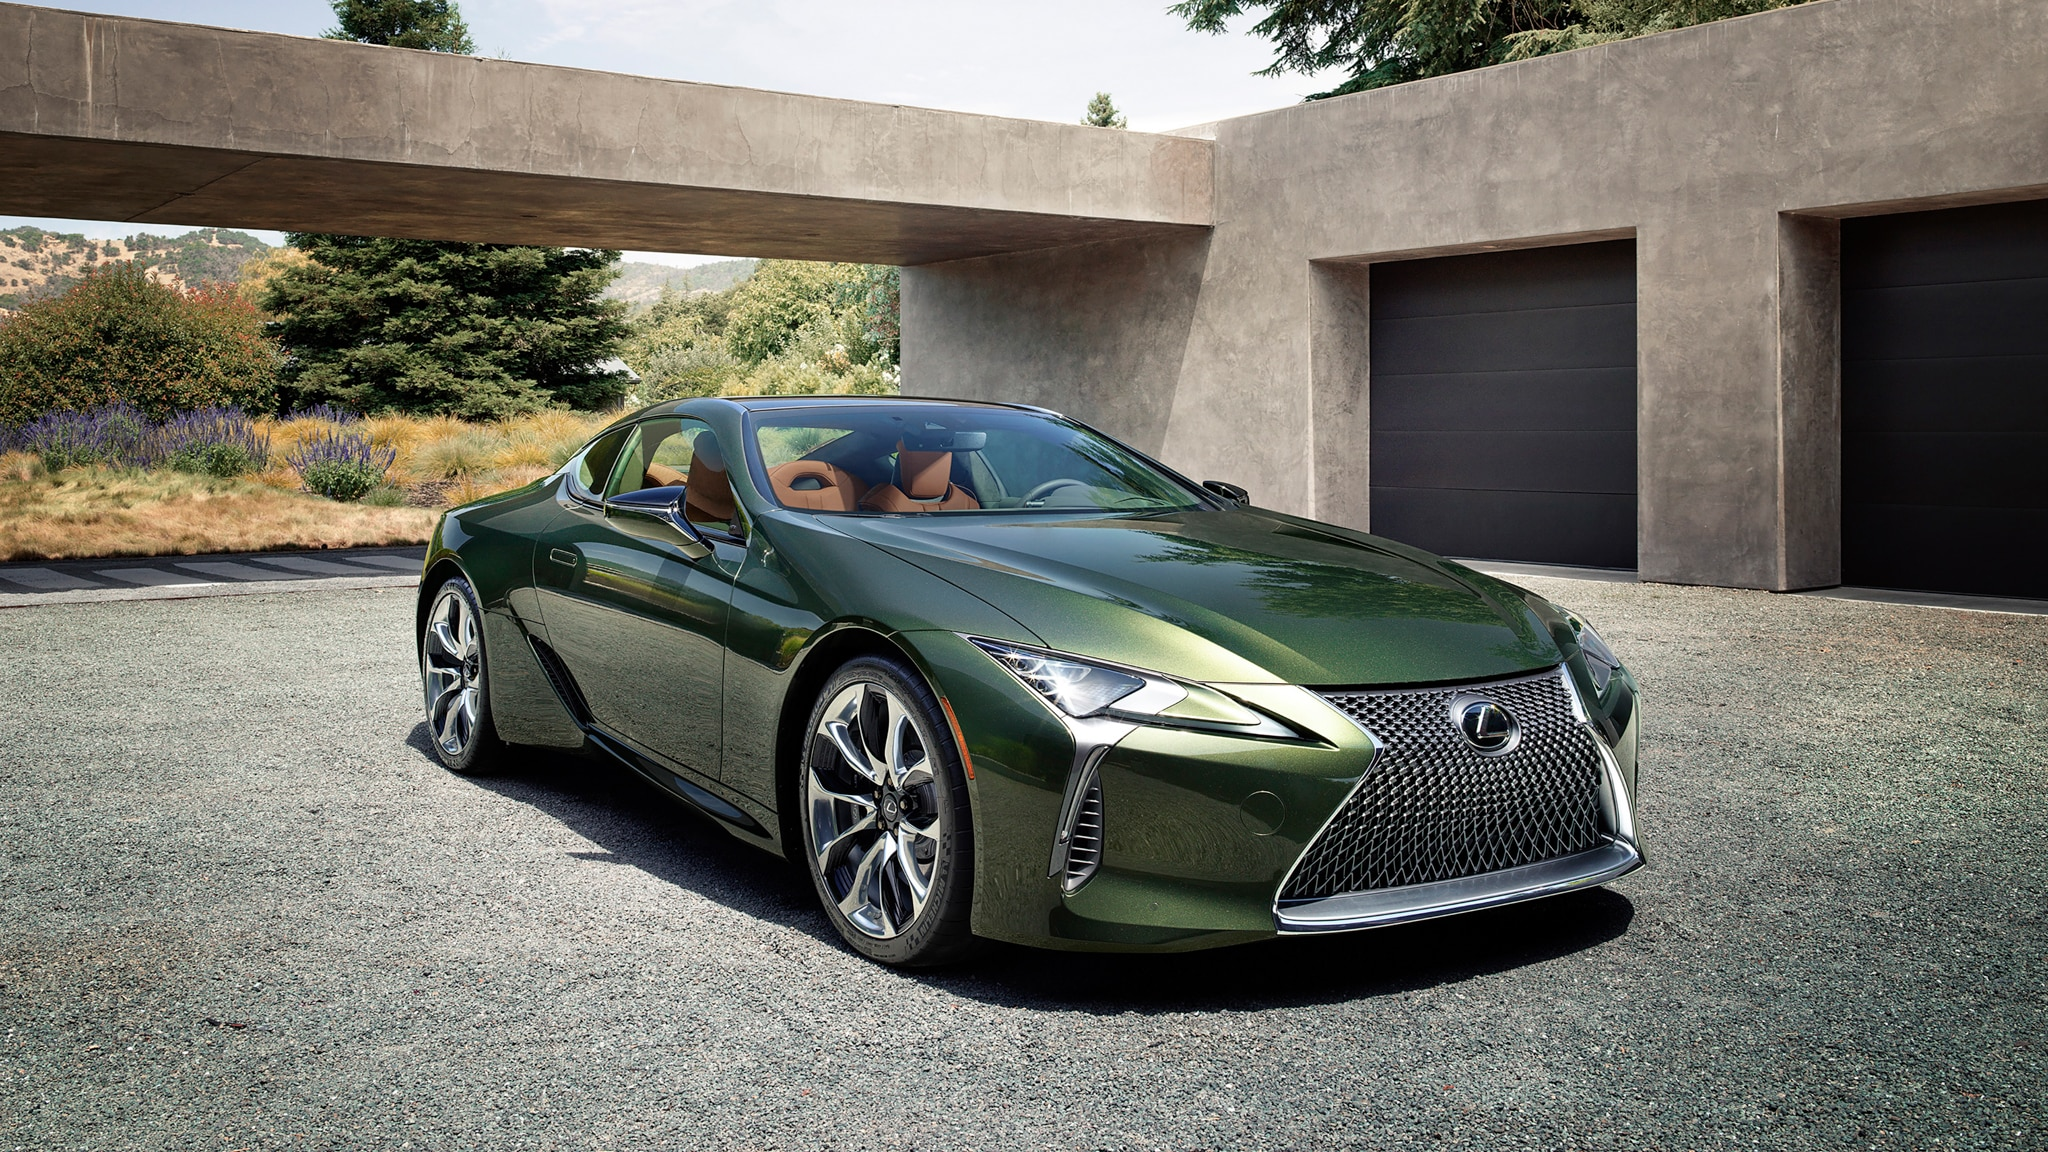 Driven 2020 Lexus Lc500 Inspiration Series Satisfies Us And Then Some